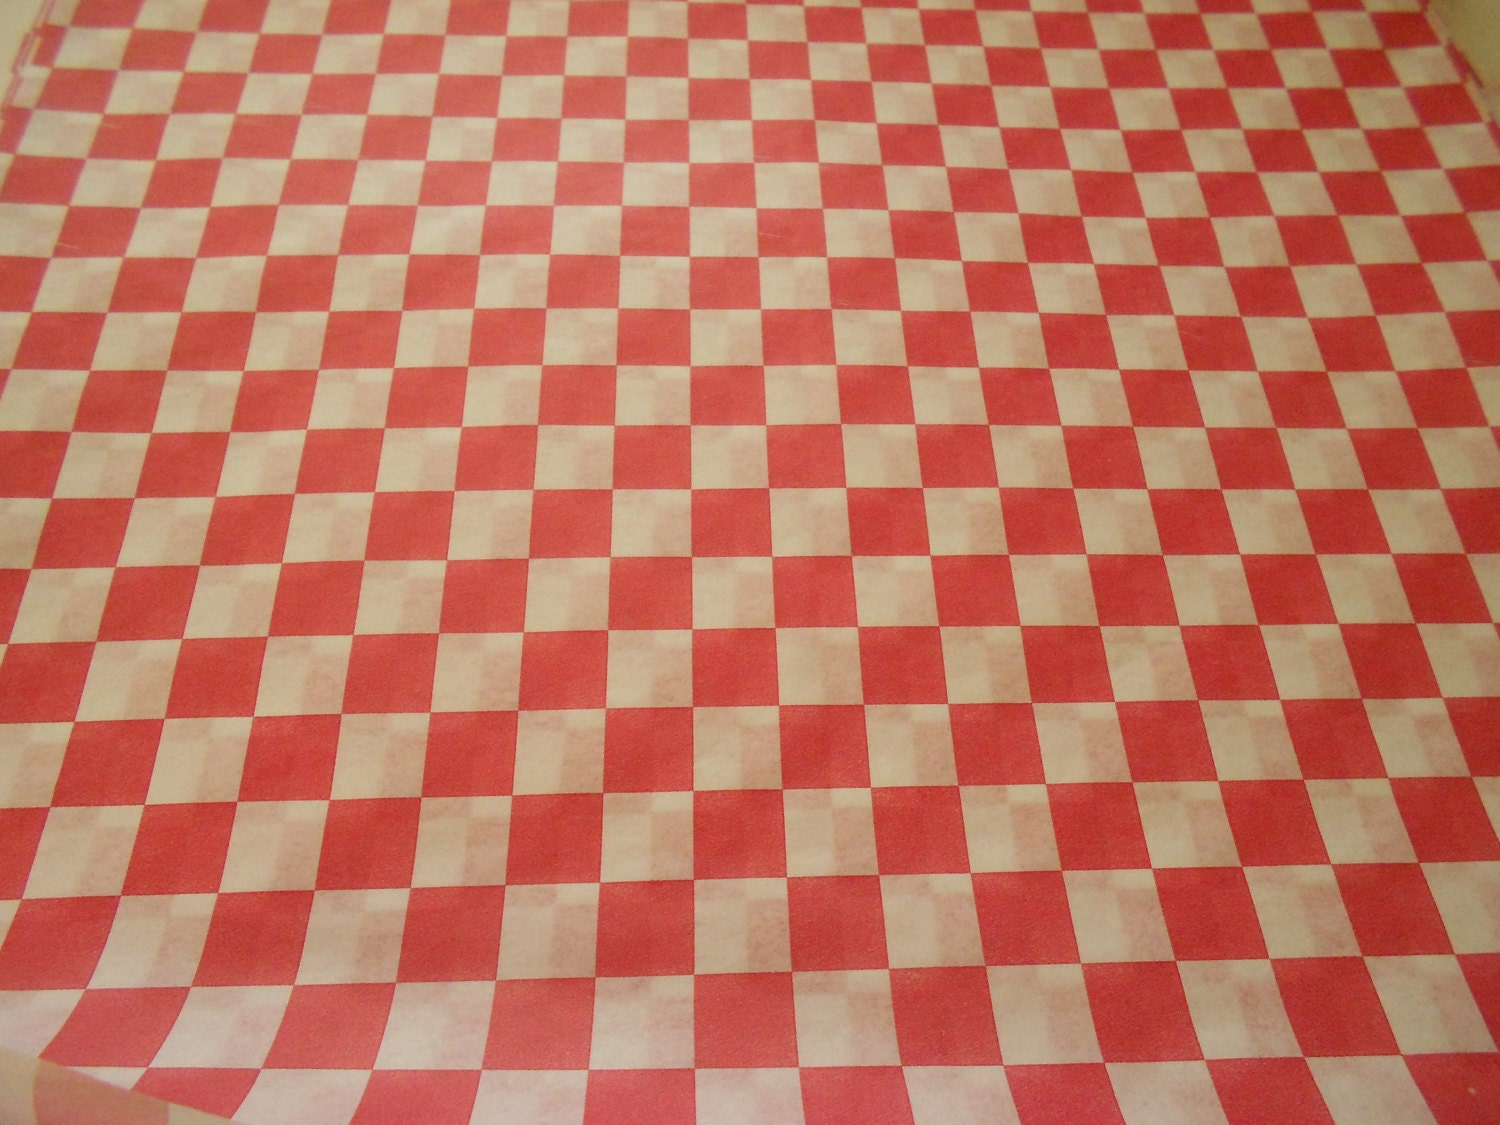 Checkered Wax Paper Checkered Waxed Paper Food